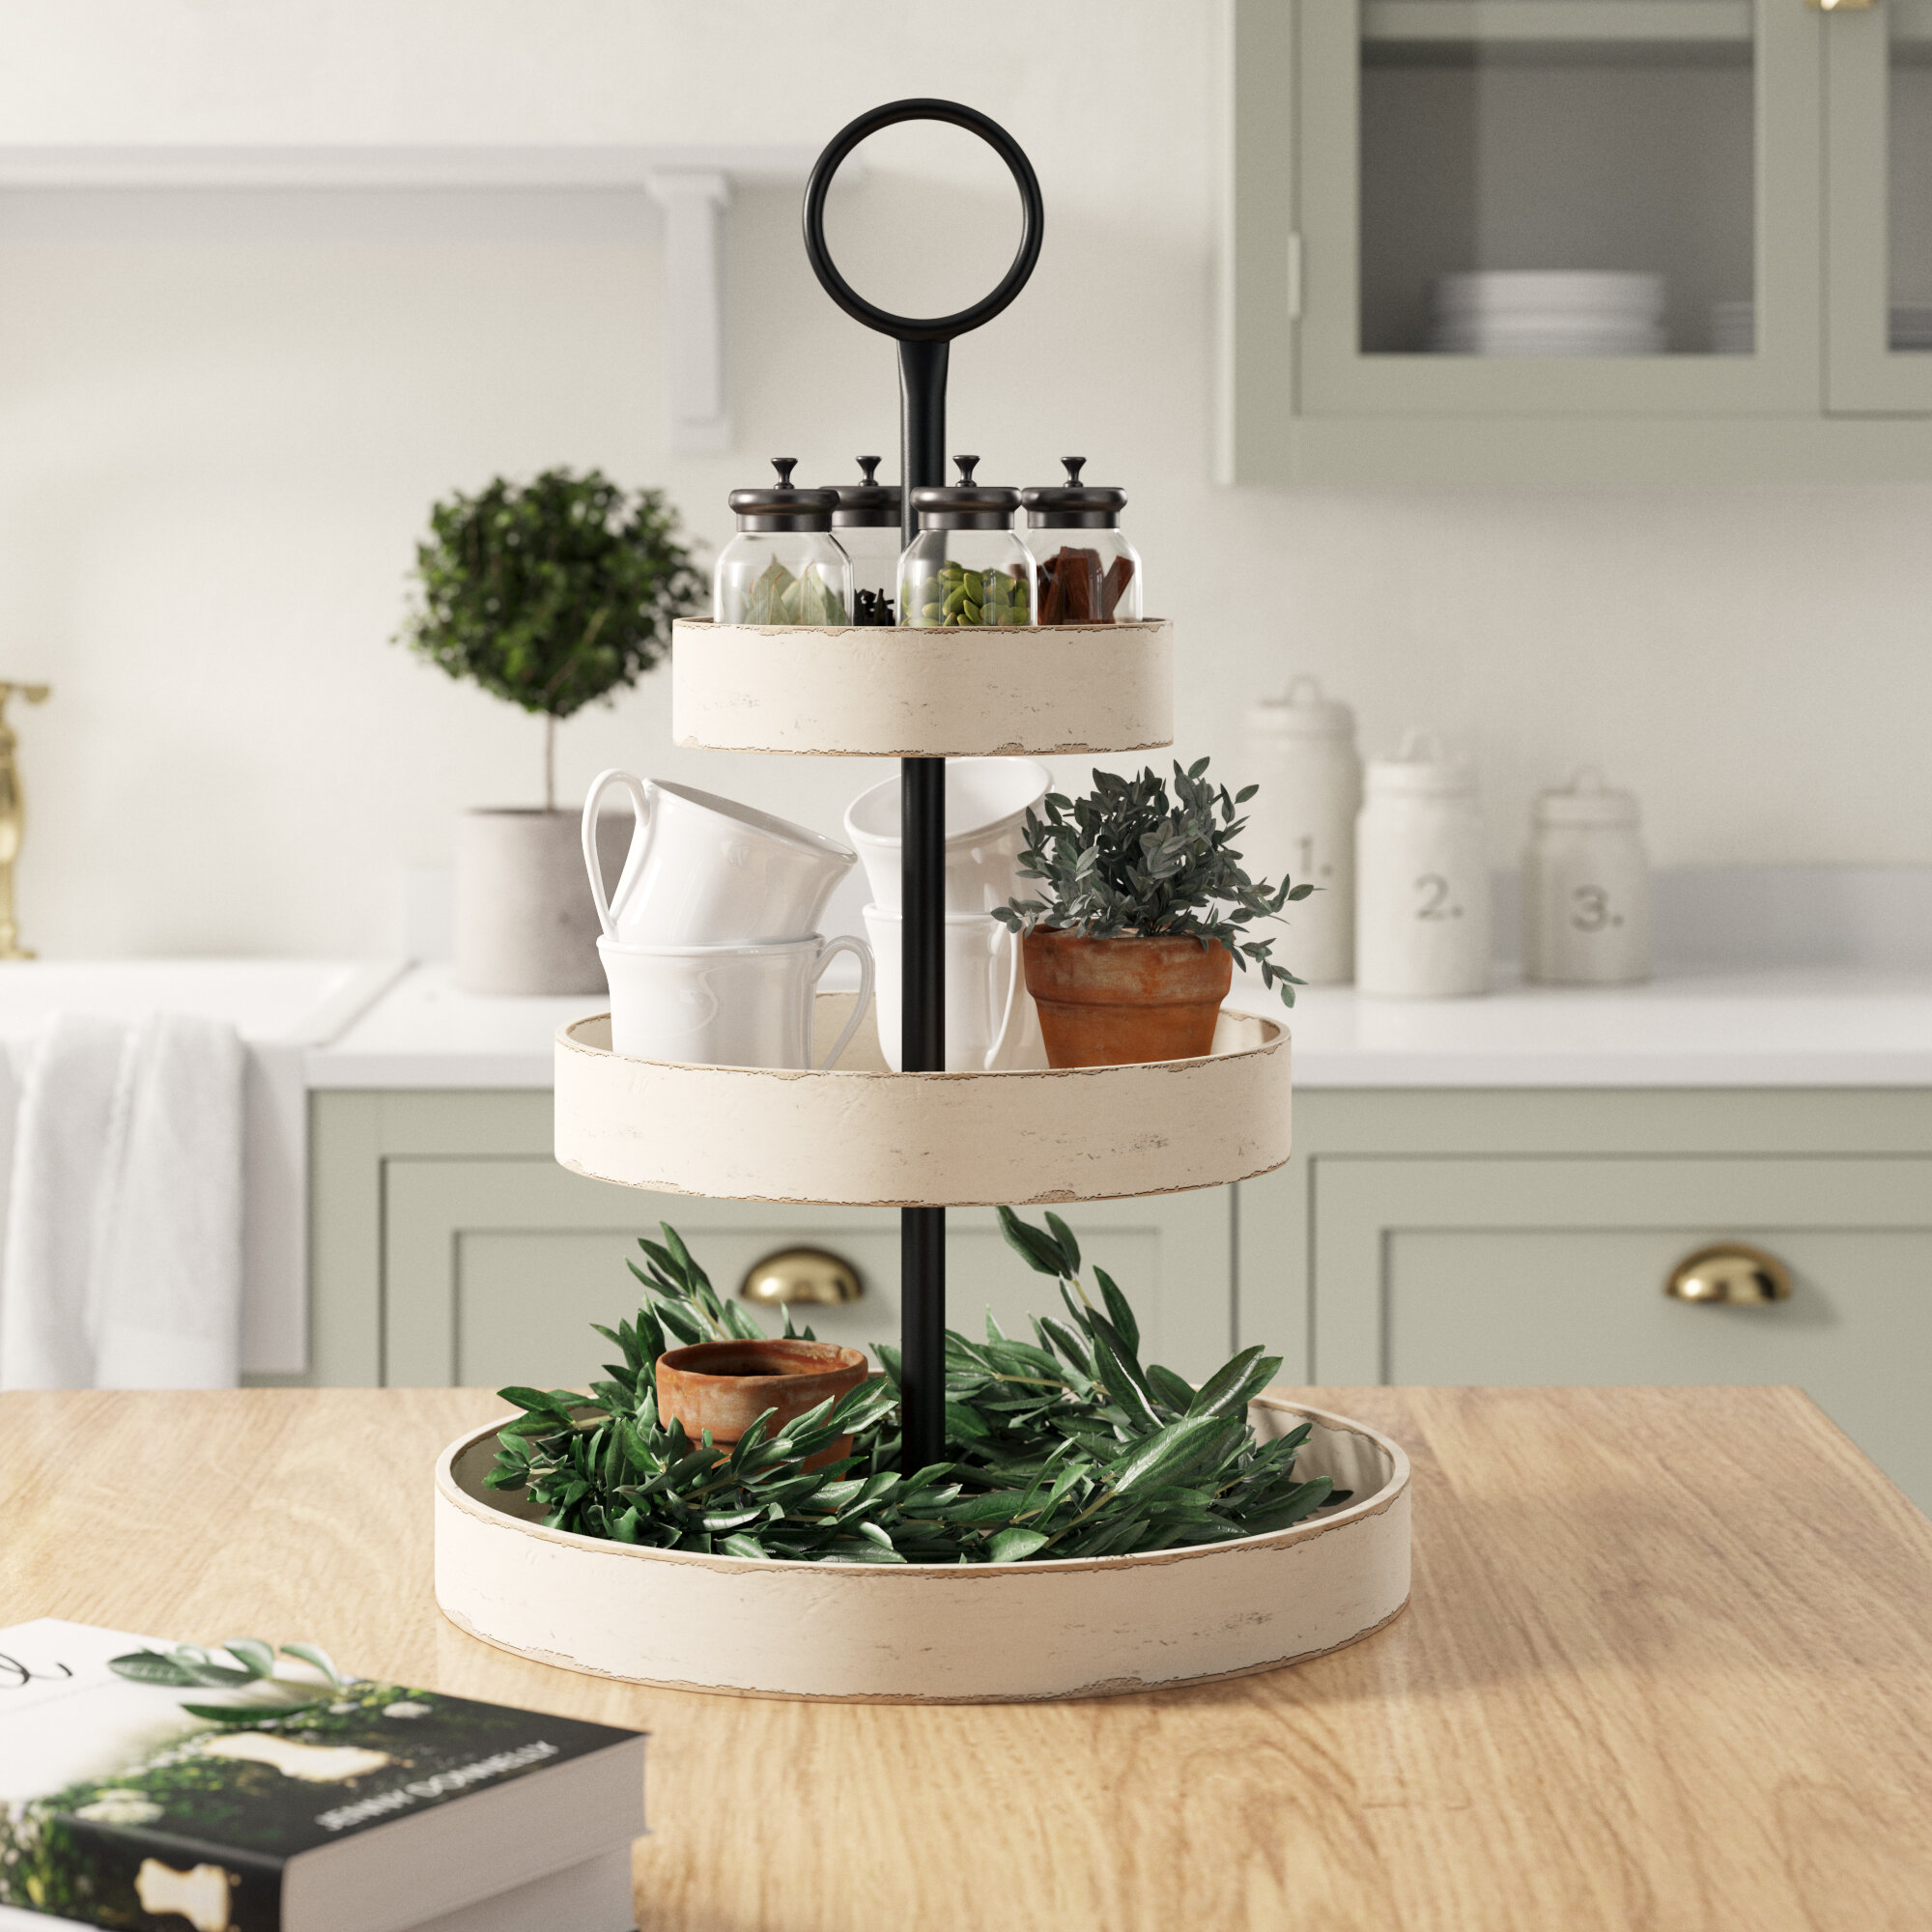 Laurel Woodmont 3 Tiered Wood Tray